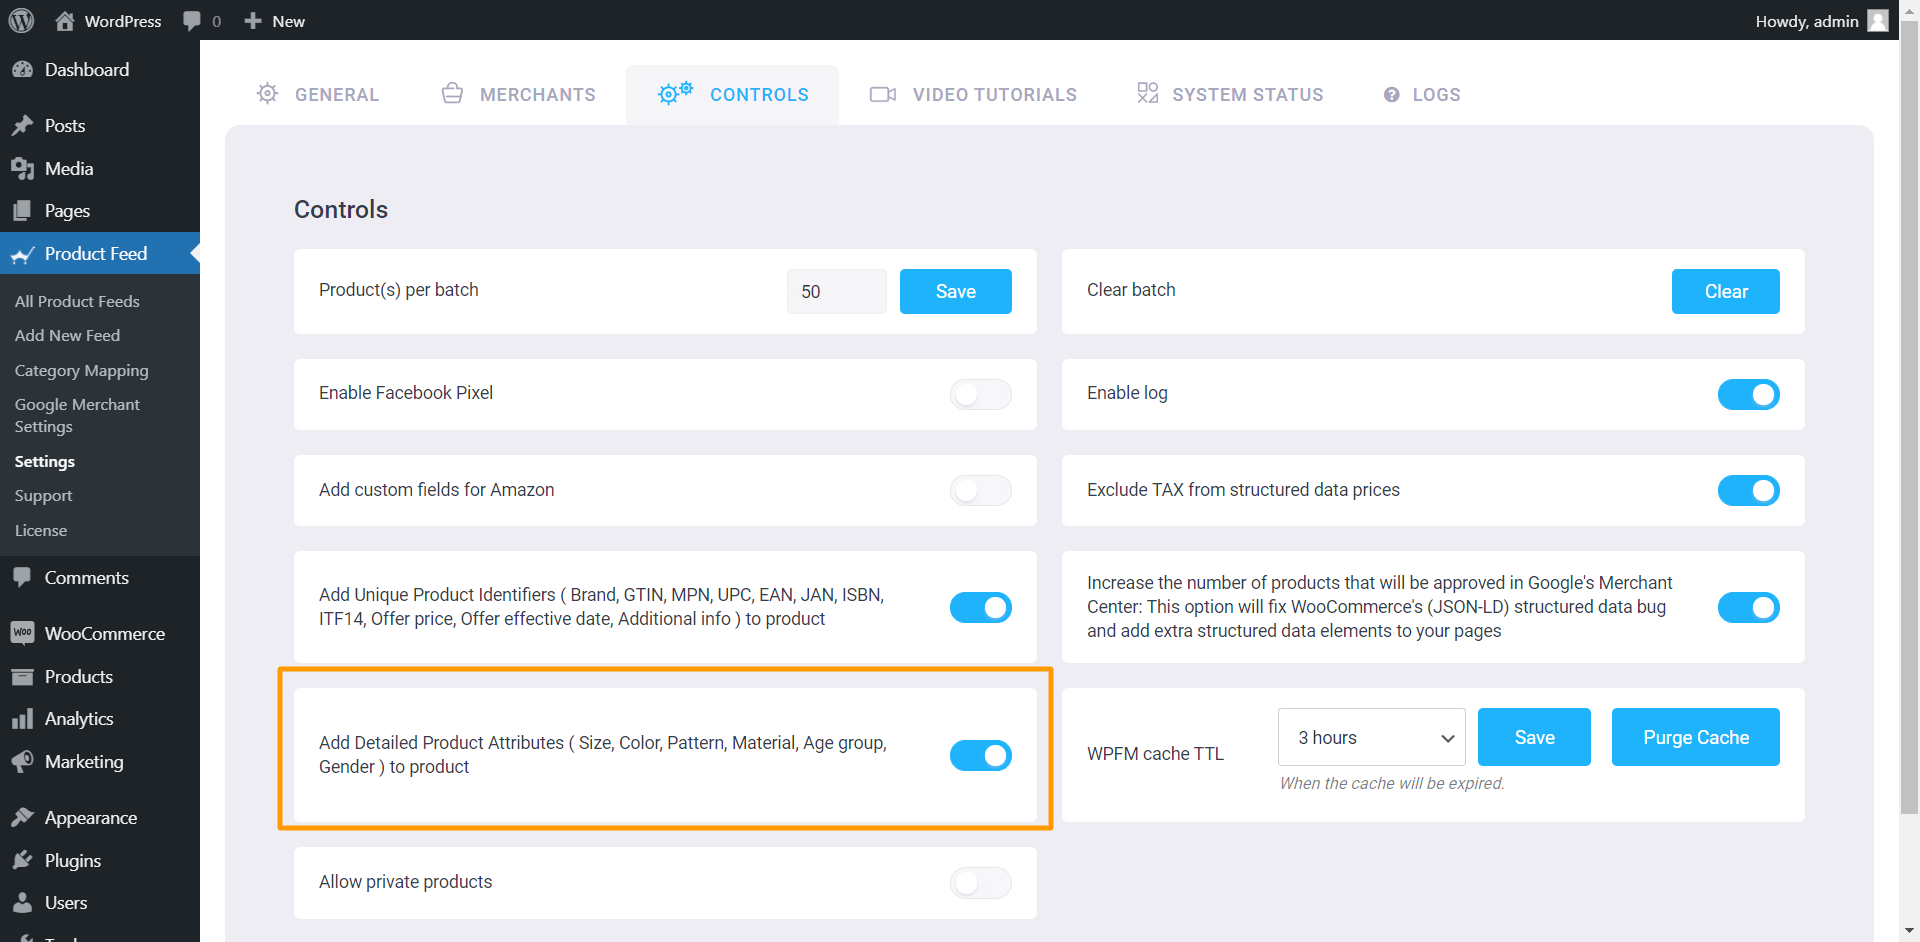 Product Feed Manager Controls - Add Detailed Product Attributes